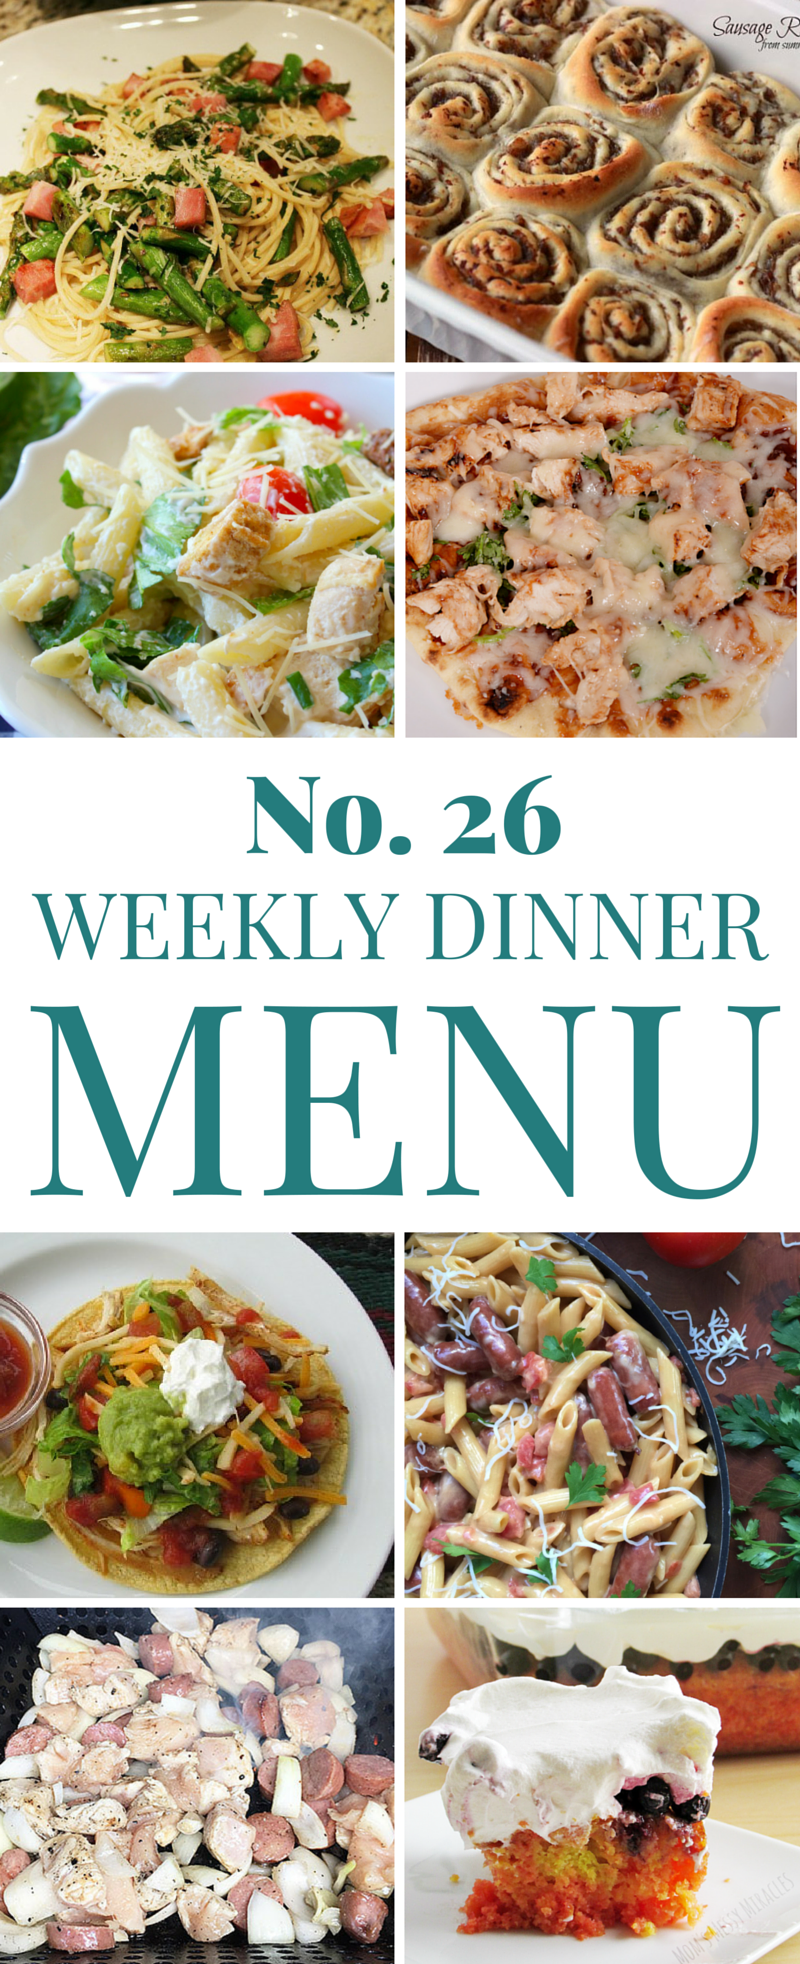 Weekly Summer dinner ideas Menu 26